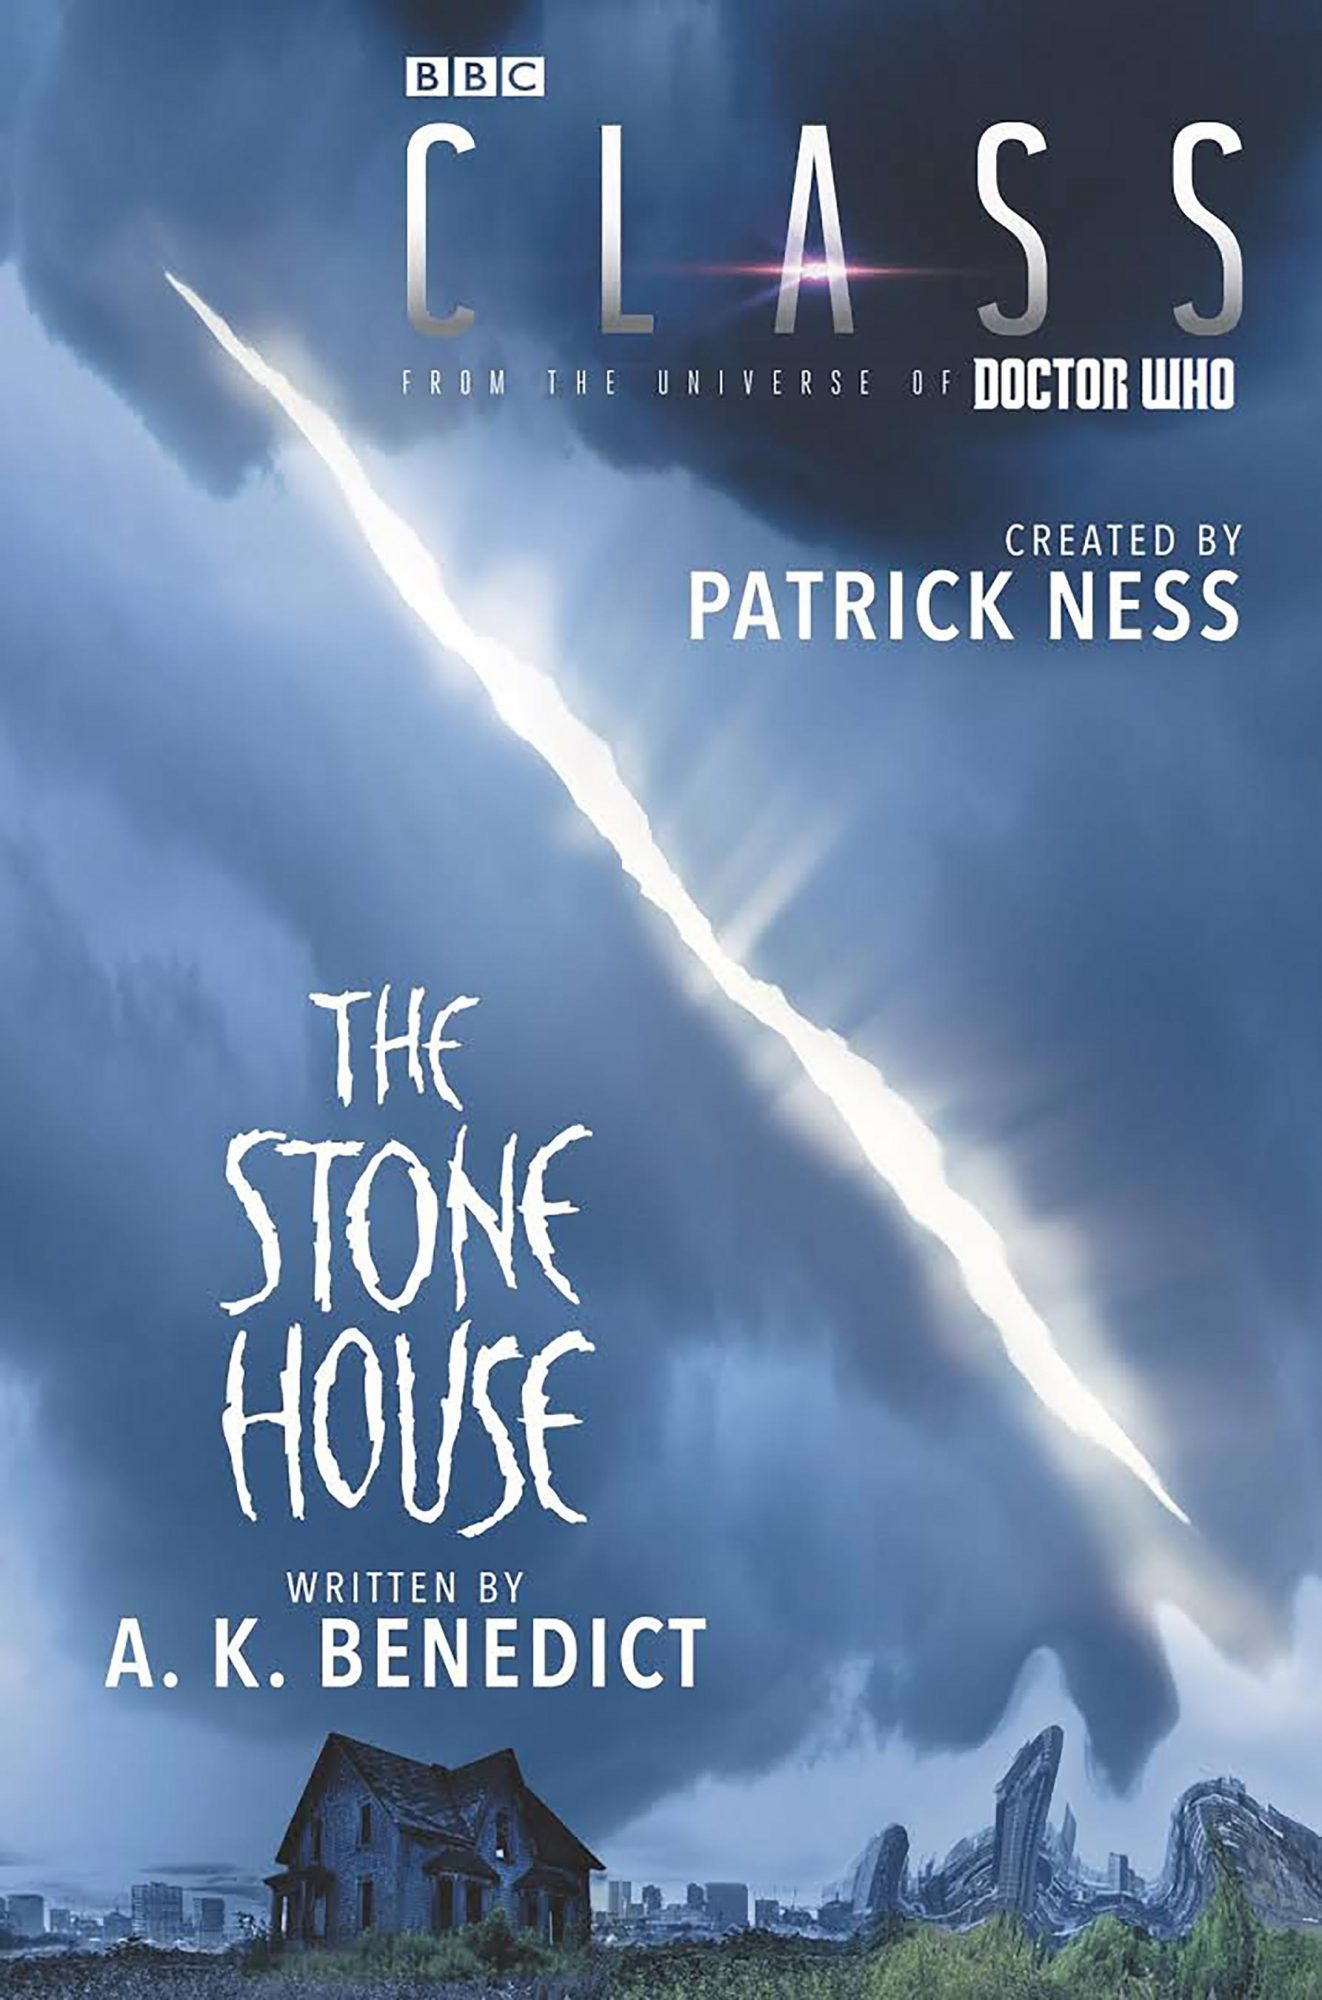 Class: The Stone House by Patrick Ness and A.K. Benedict CR: HarperCollins